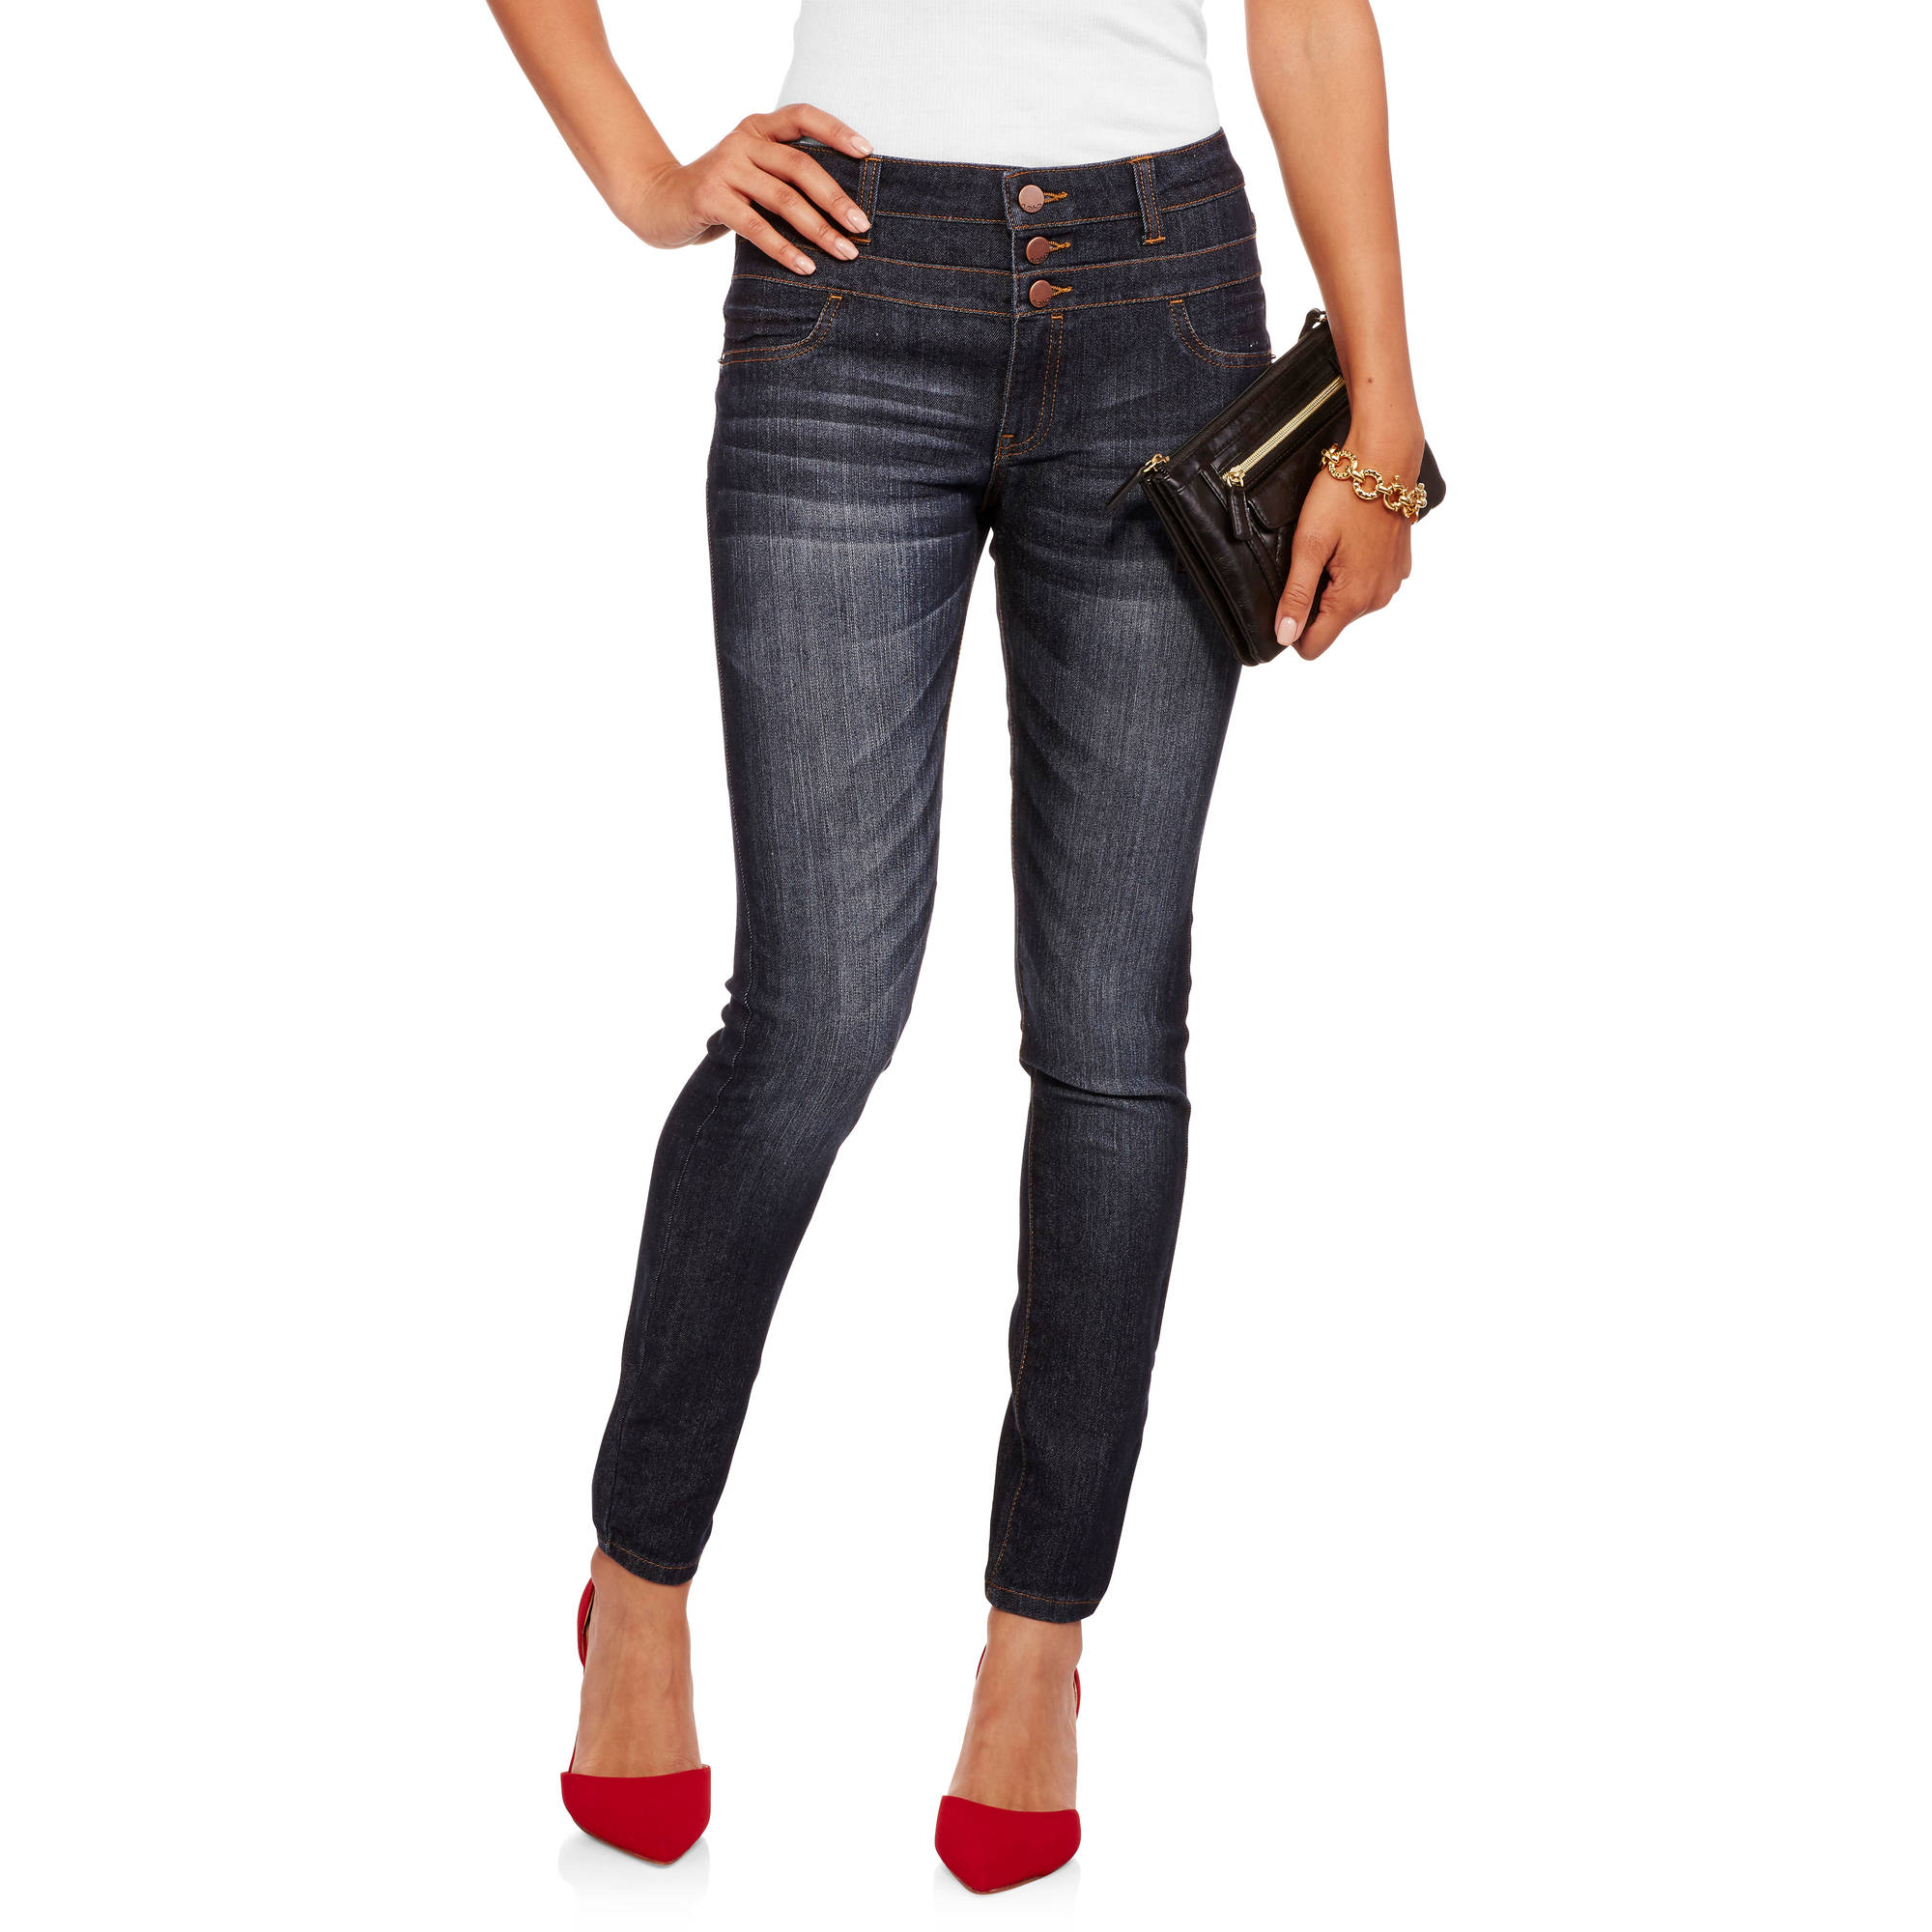 No Boundaries Juniors' 2-Button Thick Stitch Skinny Jeans with Distressing